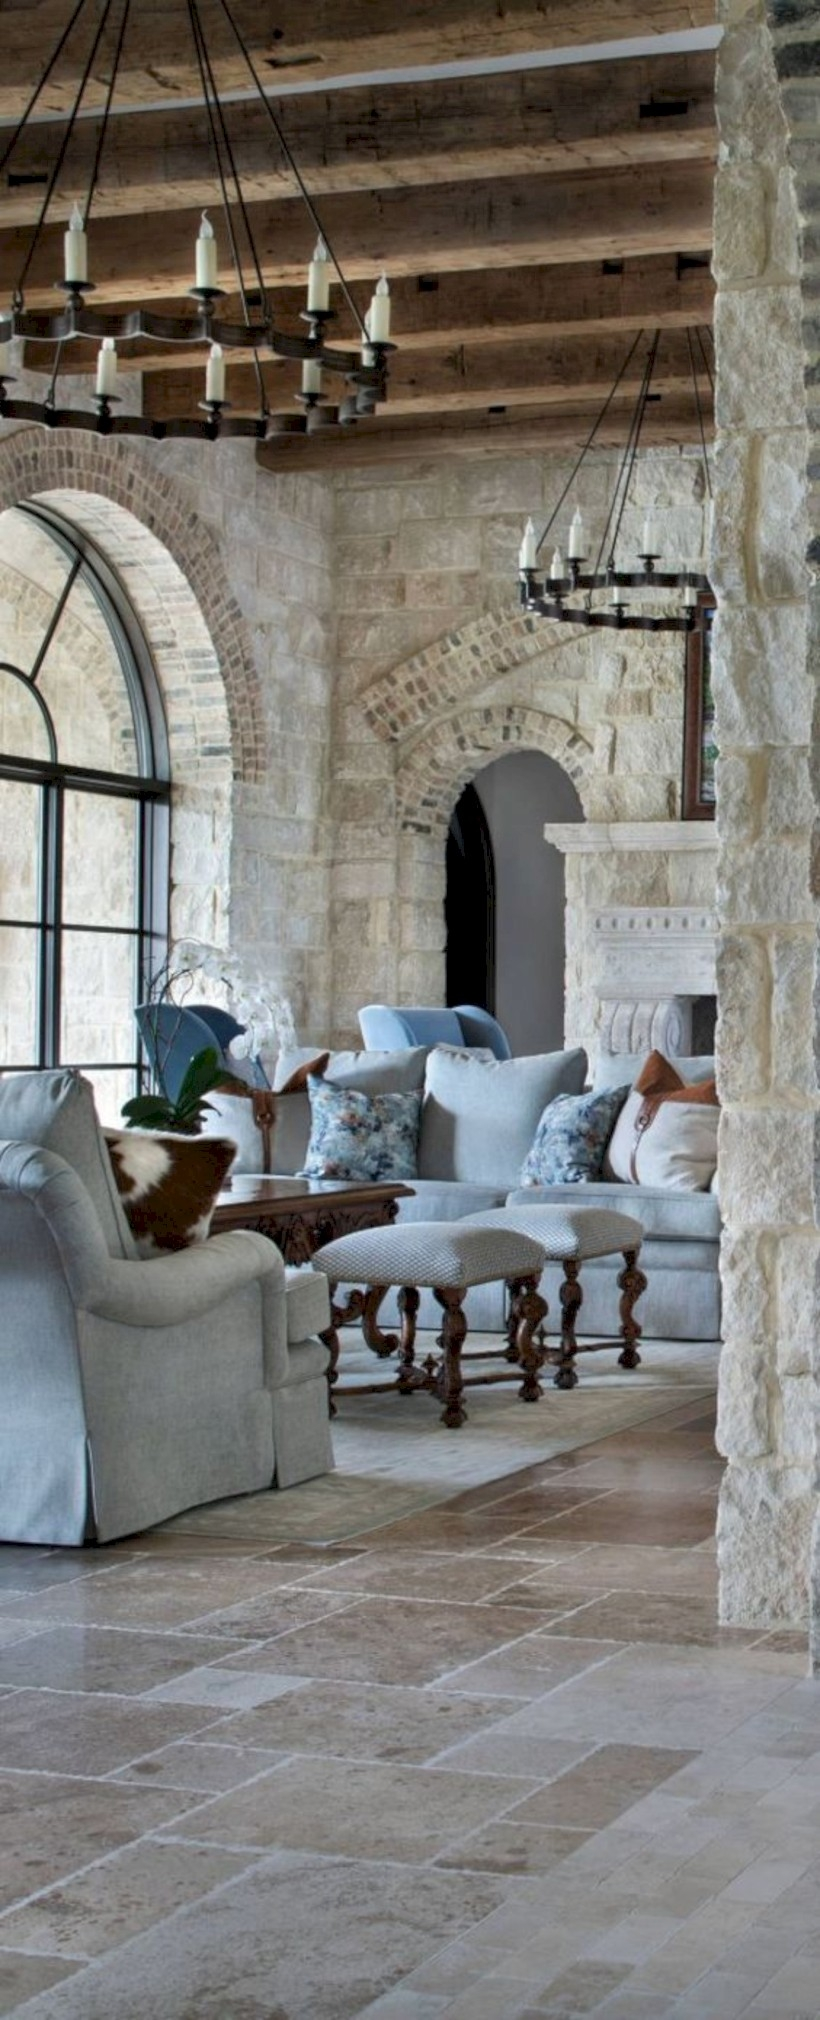 Living room with stone walls